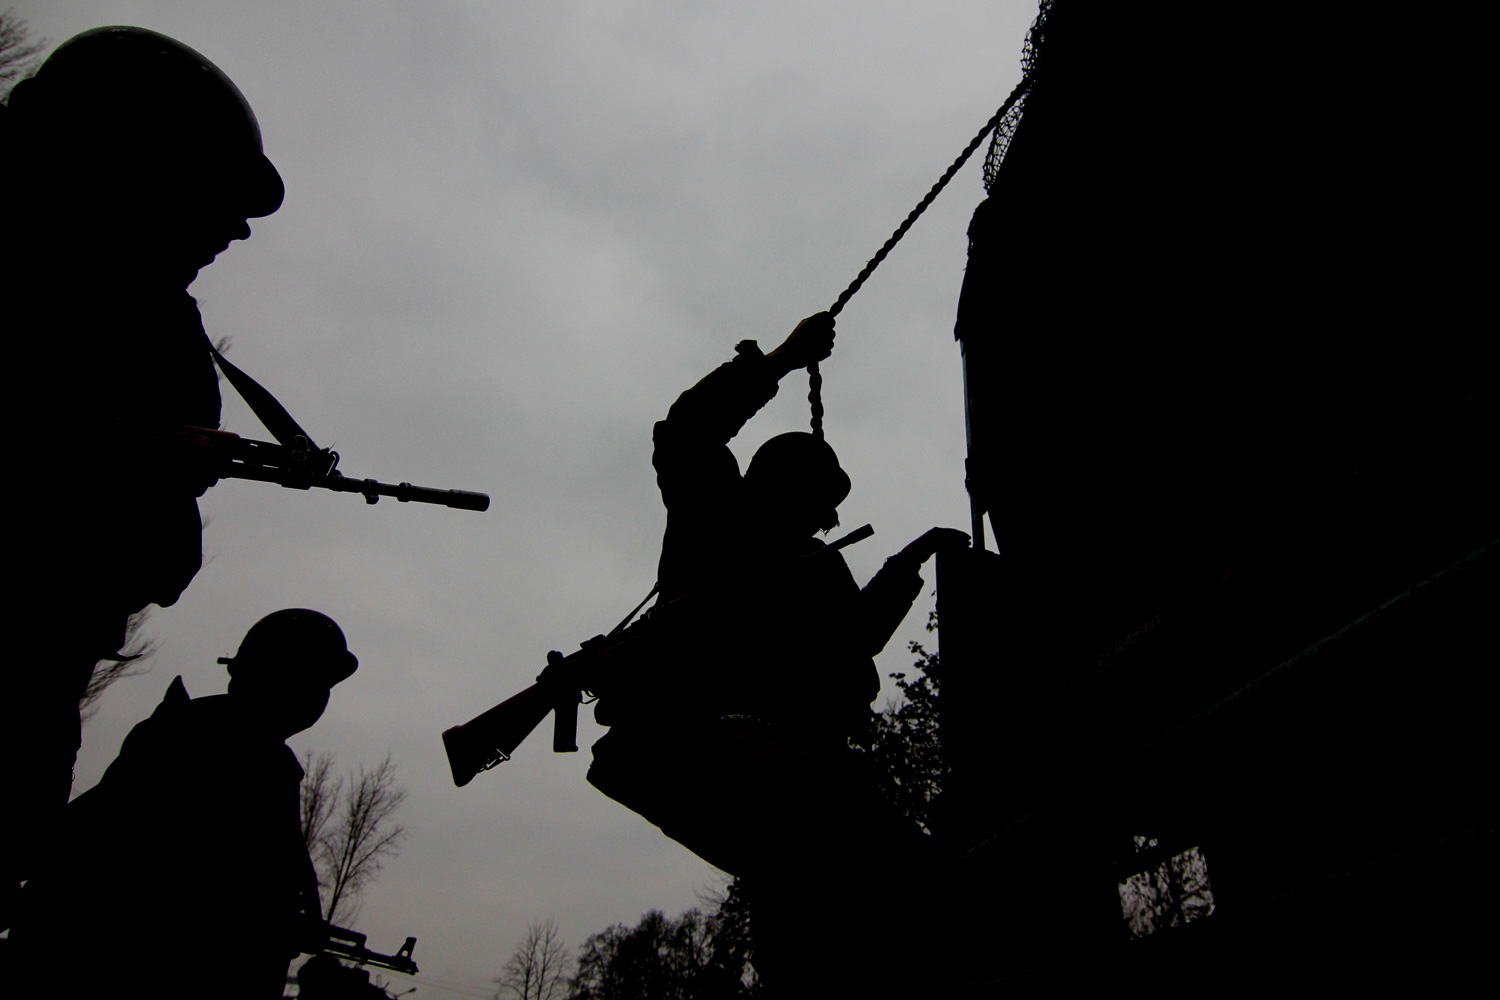 January 24, 2012. Indian paramilitary soldiers rehearse outside Bakshi Stadium, the main venue for the Indian Republic Day celebrations.